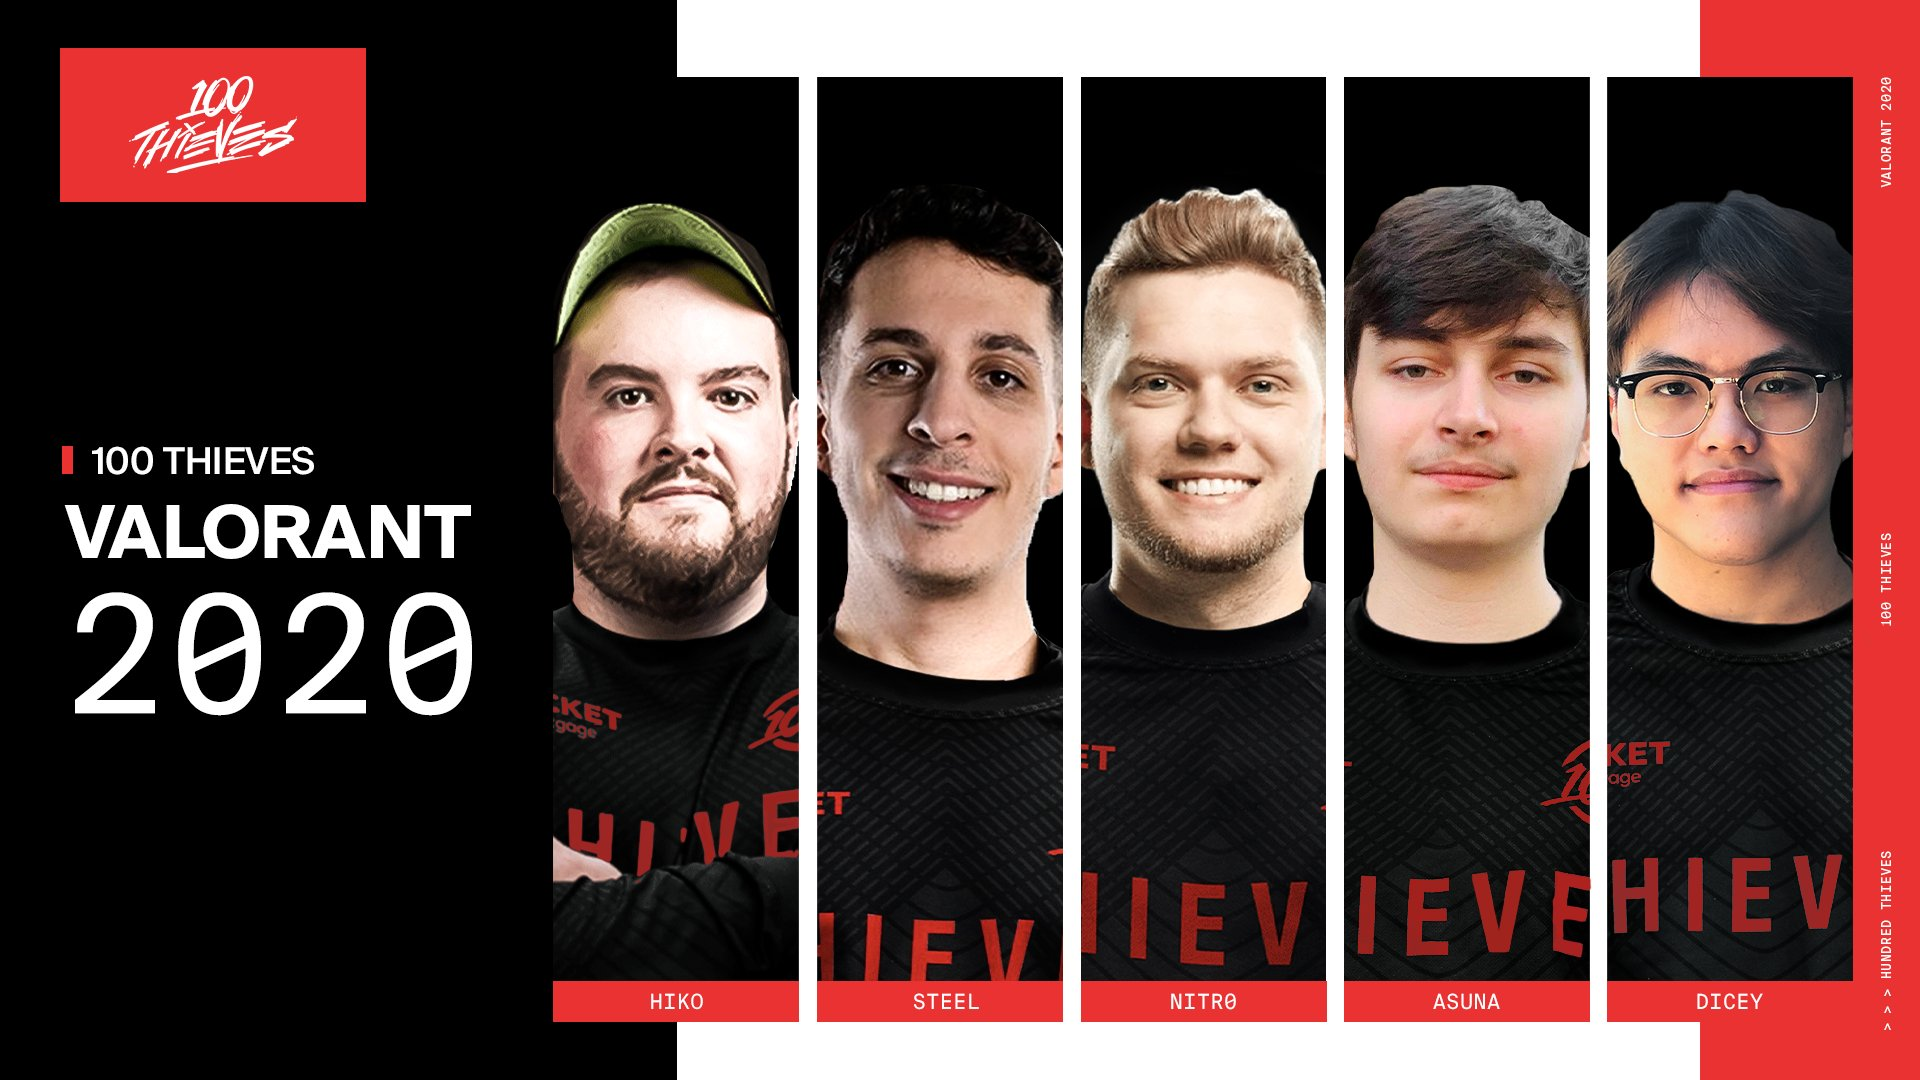 """100 Thieves on Twitter: """"Excited to announce the final two members of 100  Thieves VALORANT: Asuna & Dicey! With that, we have rounded out our  competitive VALORANT roster: @Hiko @JoshNissan @nitr0 @Asunaa @"""